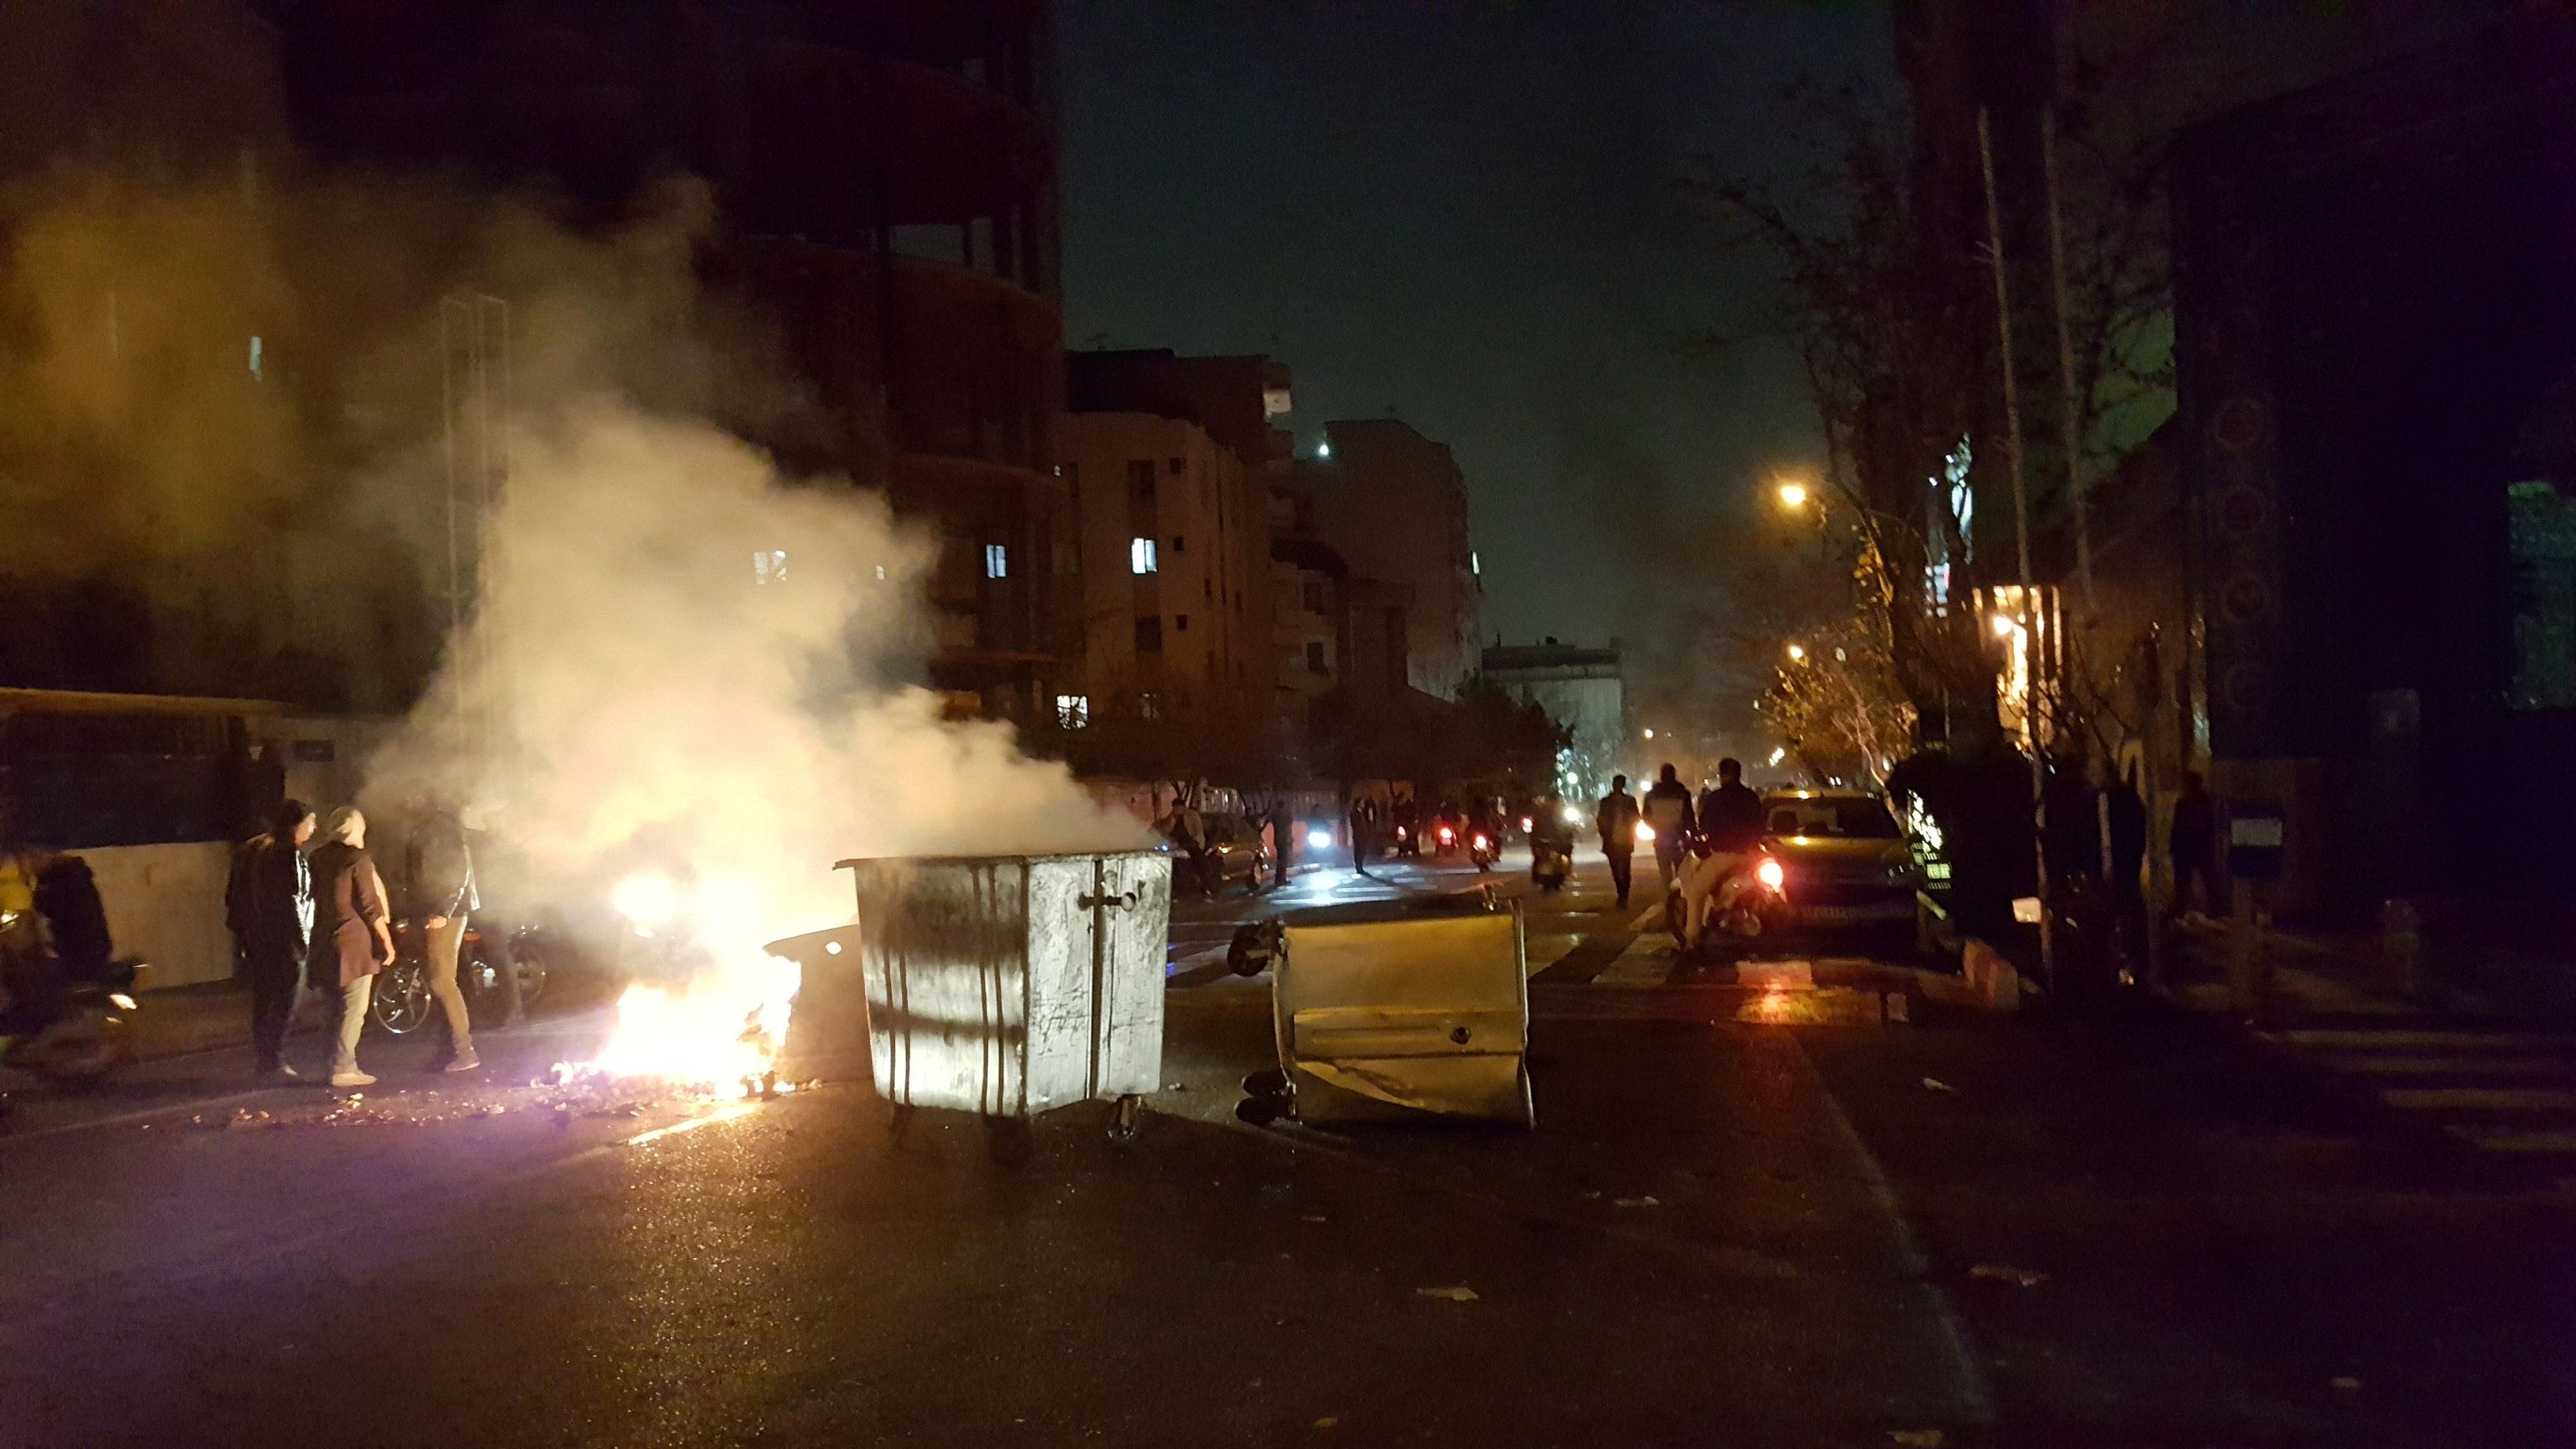 People protest in Tehran, Iran December 30, 2017 in this picture obtained from social media. REUTERS. THIS IMAGE HAS BEEN SUPPLIED BY A THIRD PARTY.     TPX IMAGES OF THE DAY